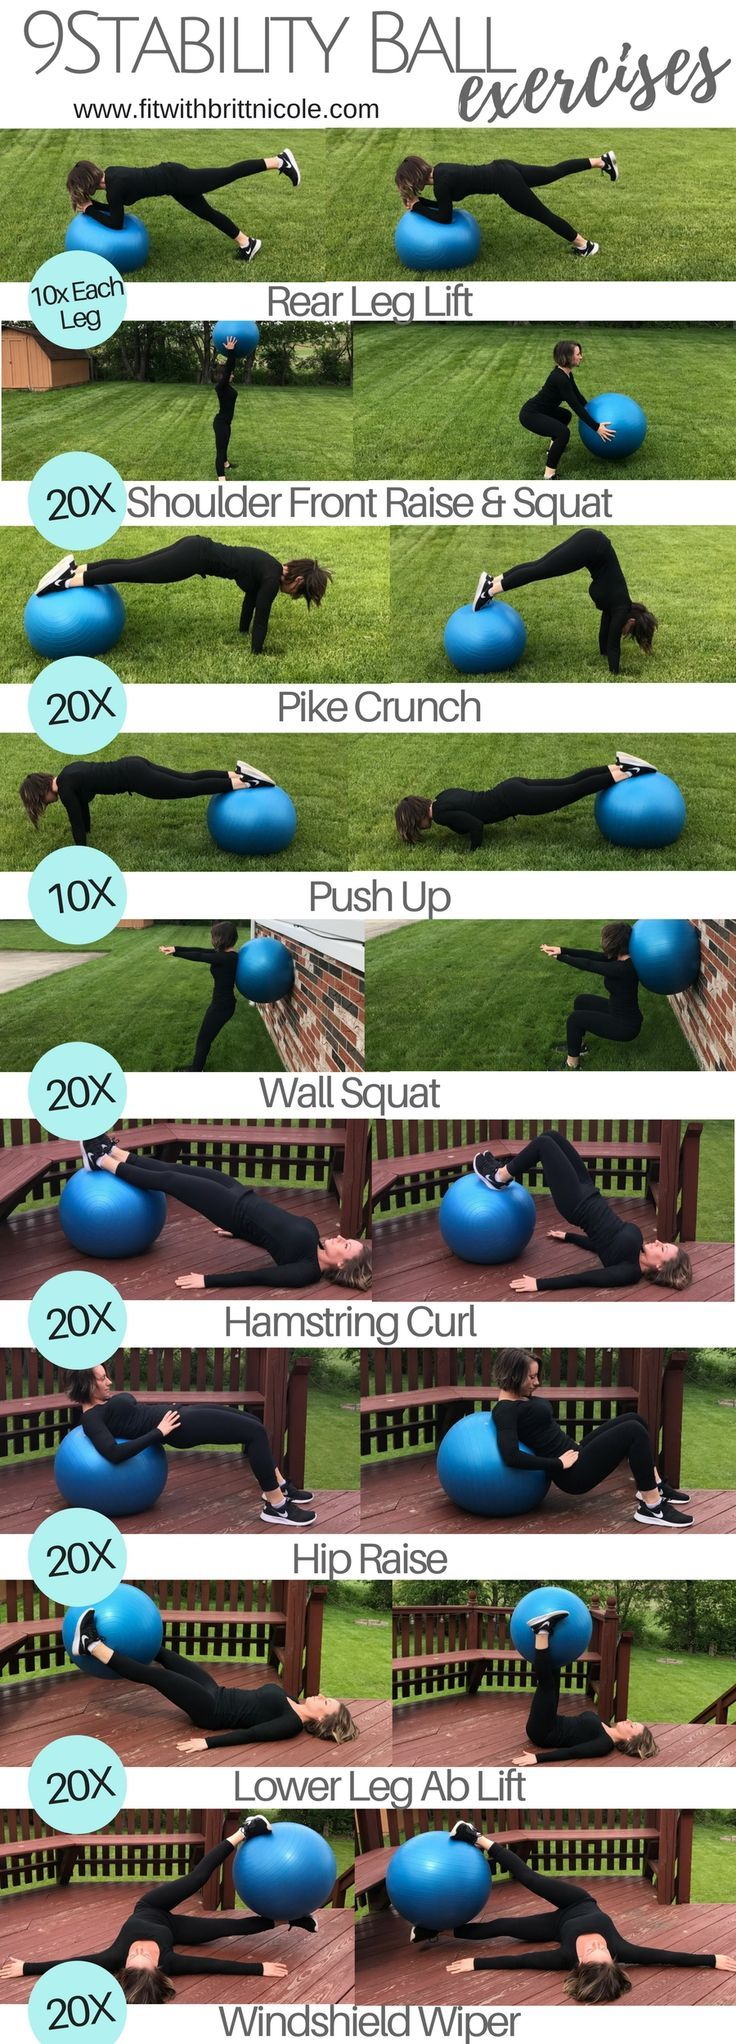 9 stability ball exercises! This is a workout at home or a fitness workout! A large